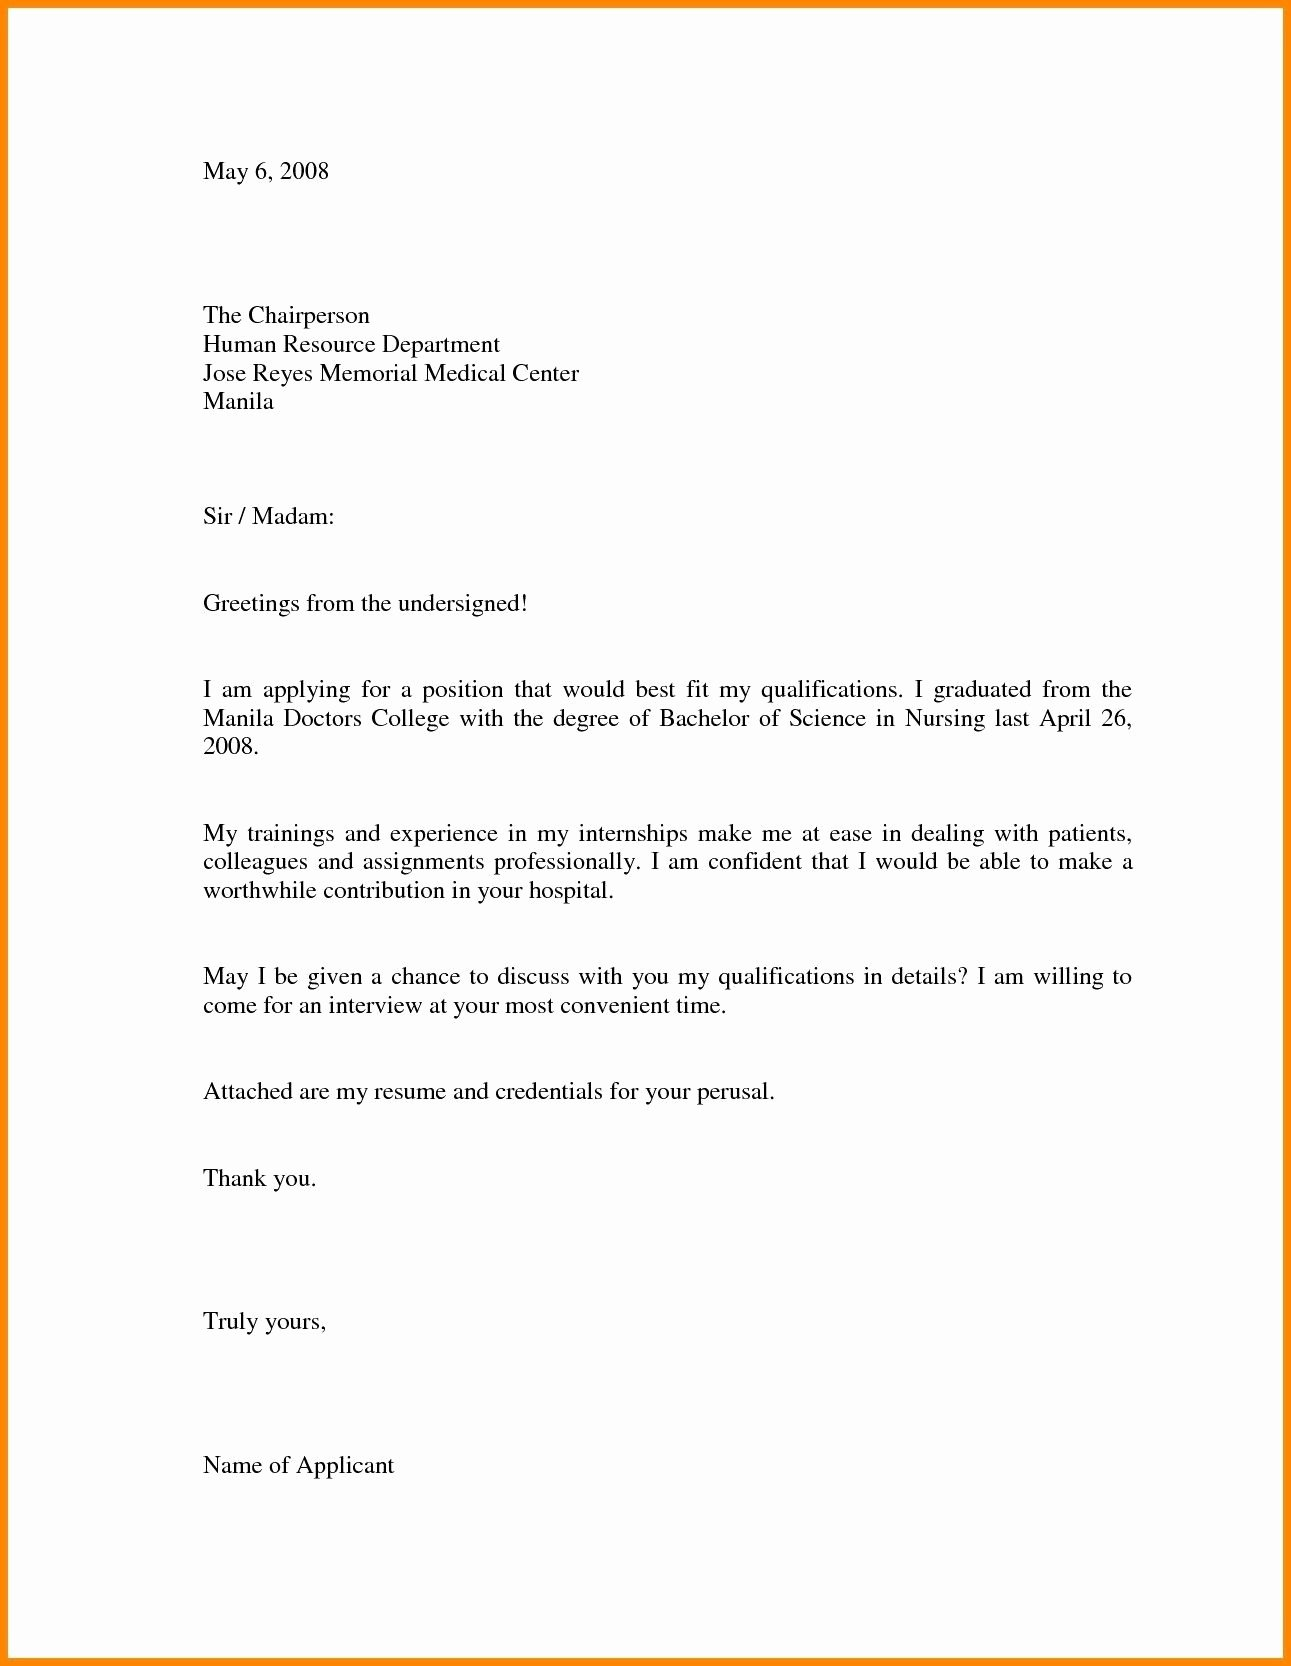 Job Application Template Doc Best Of Cover Letter Sample for Job Application Doc Refrence Letter Opinion